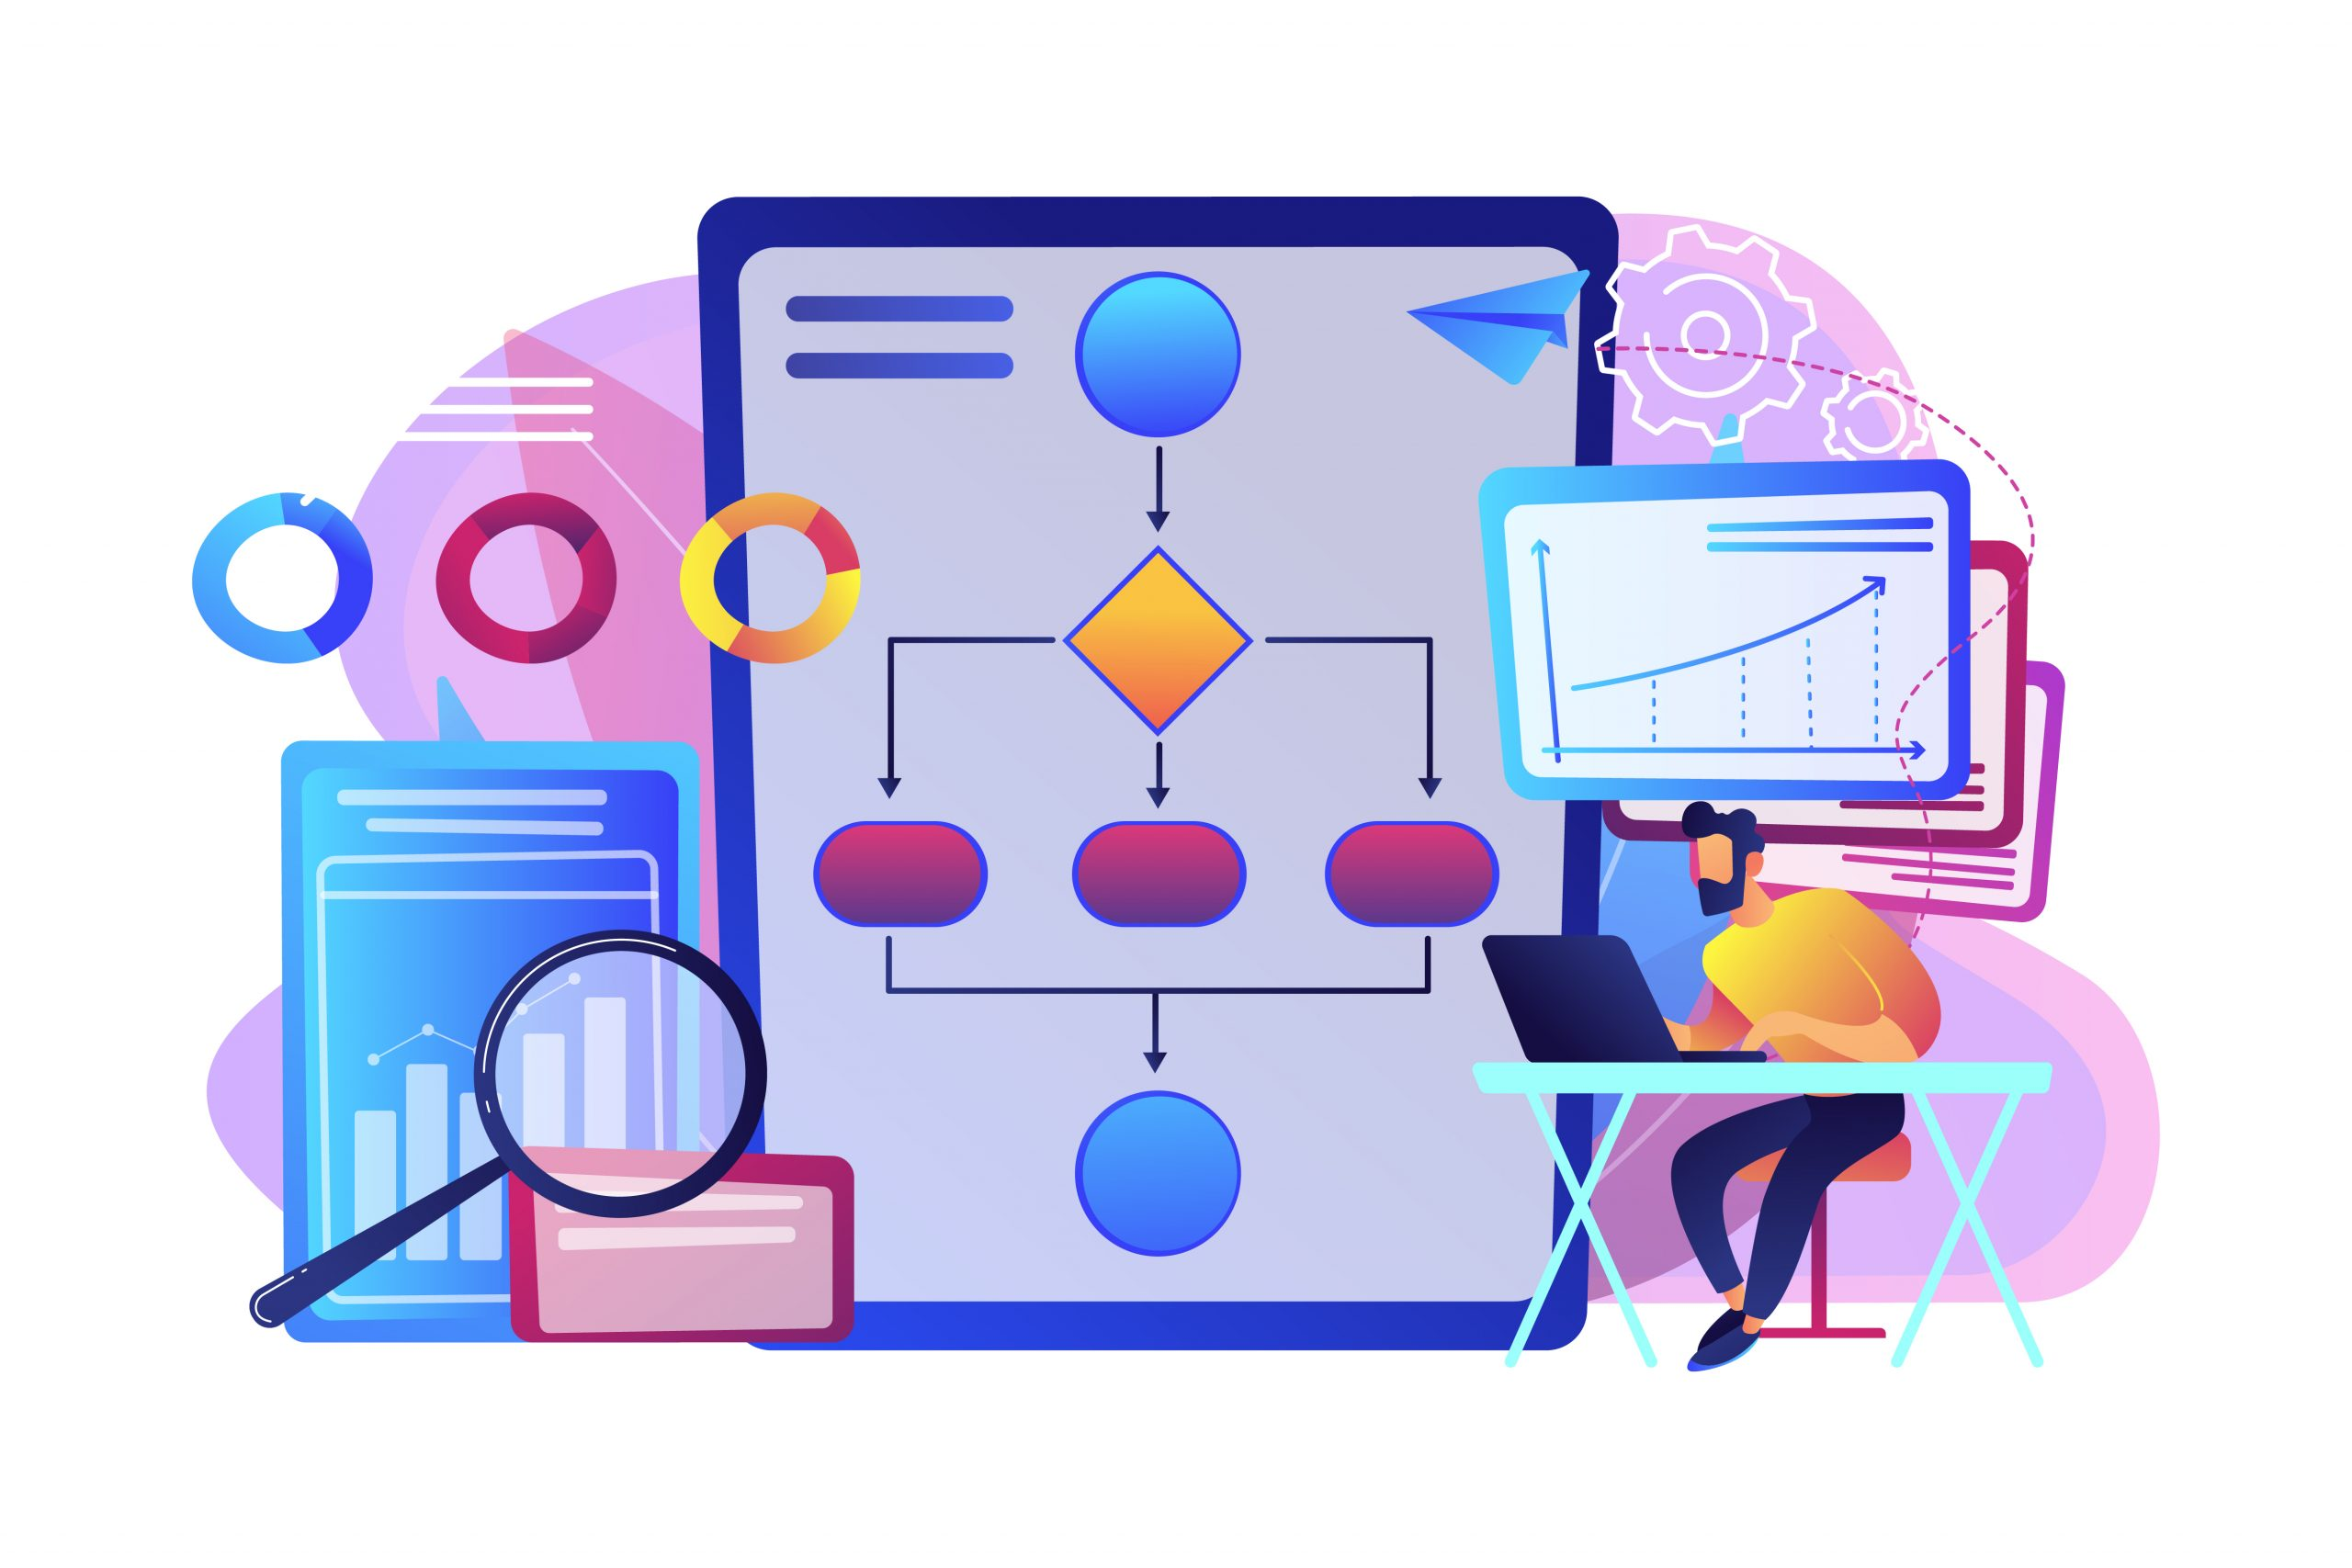 A citizen developer working at laptop with automation process. Business process automation, business process workflow, automated business system concept. Bright vibrant violet vector isolated illustration